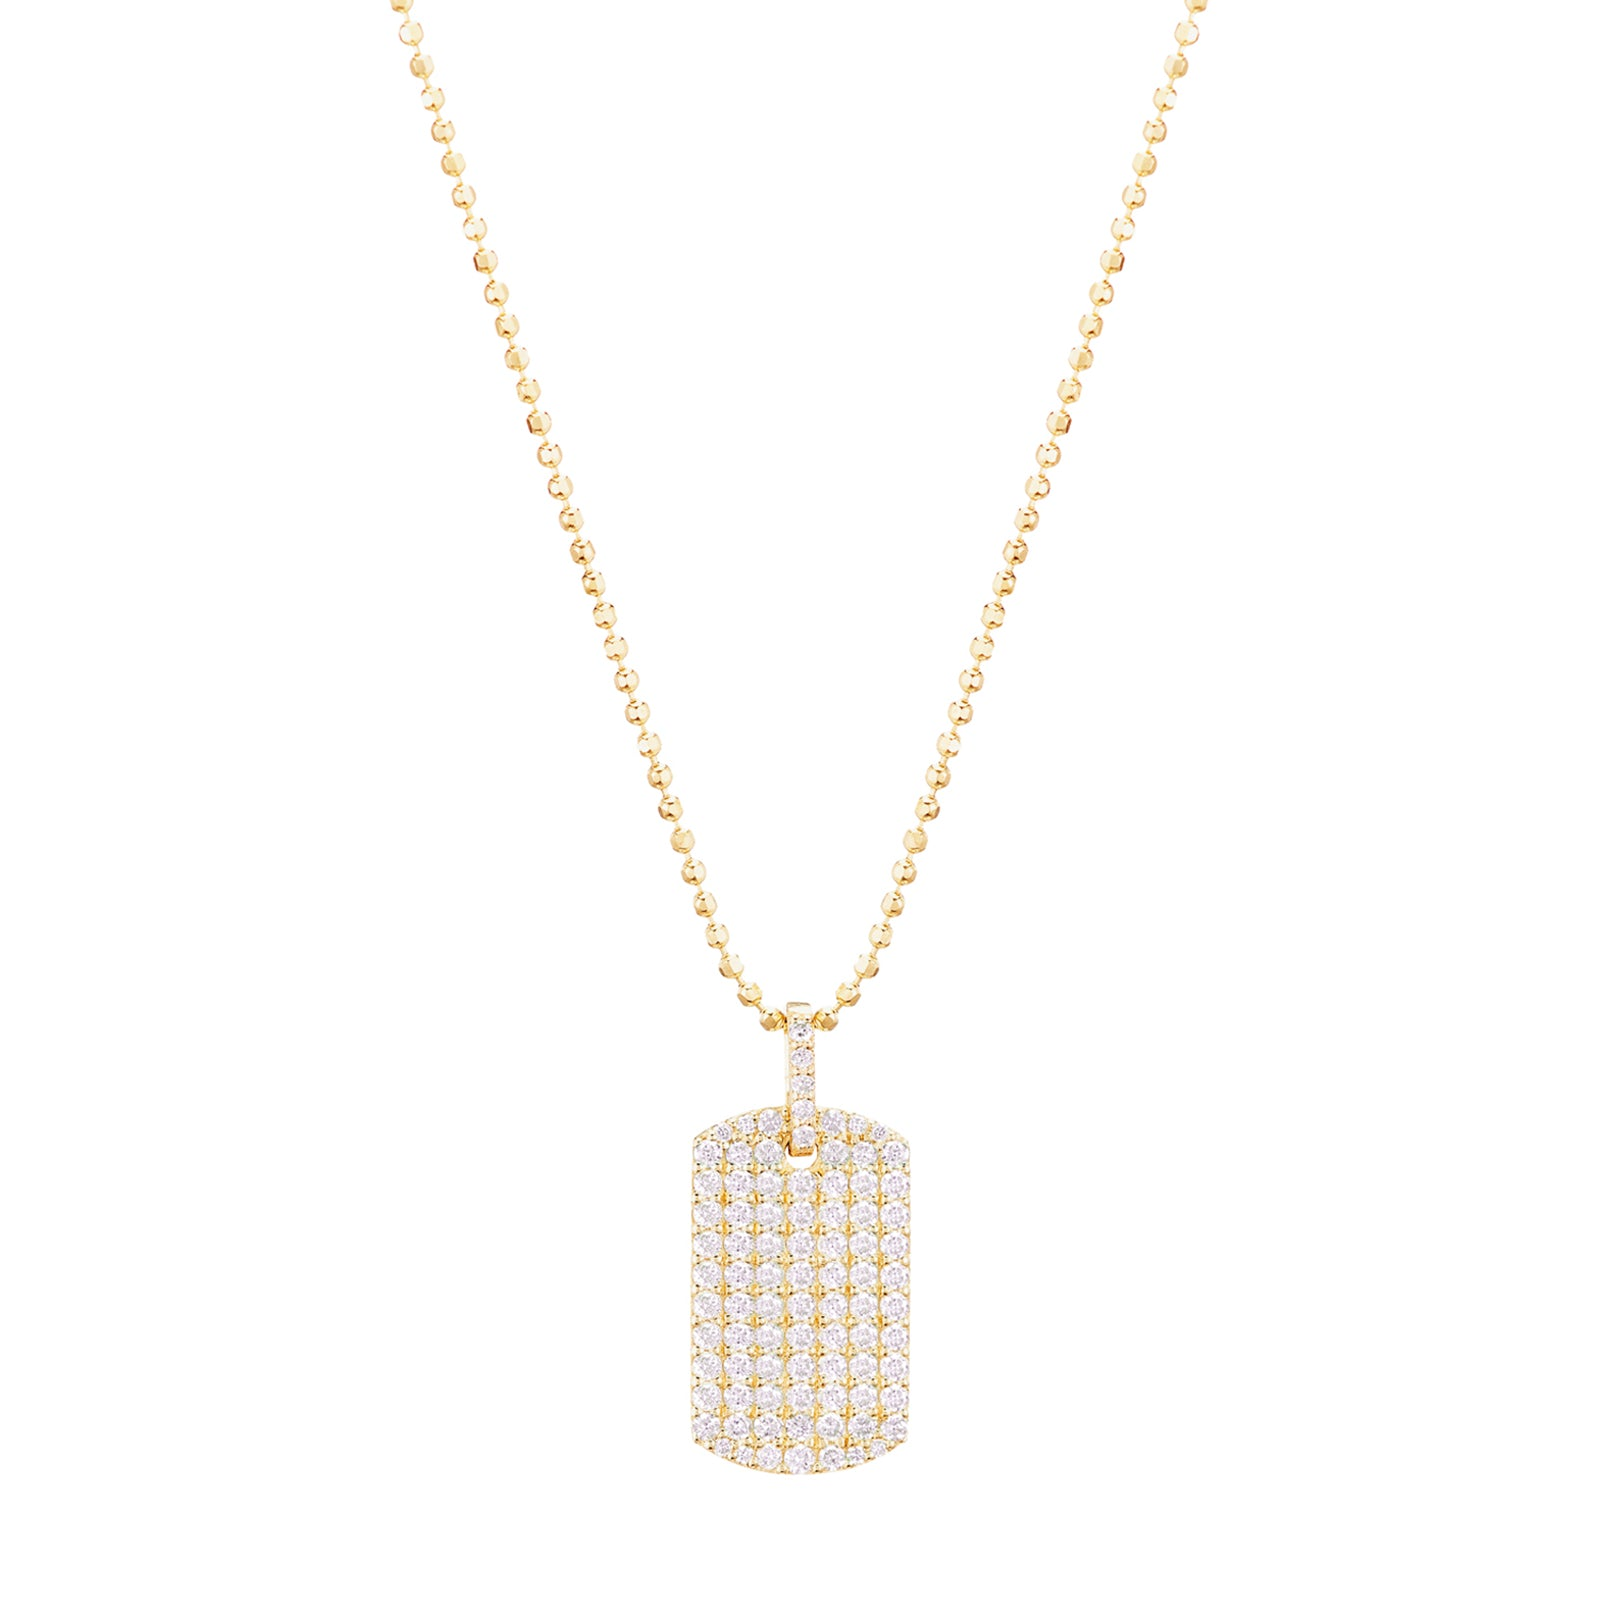 Carbon & Hyde Diamond Dog Tag Necklace - Yellow Gold - Necklaces - Broken English Jewelry